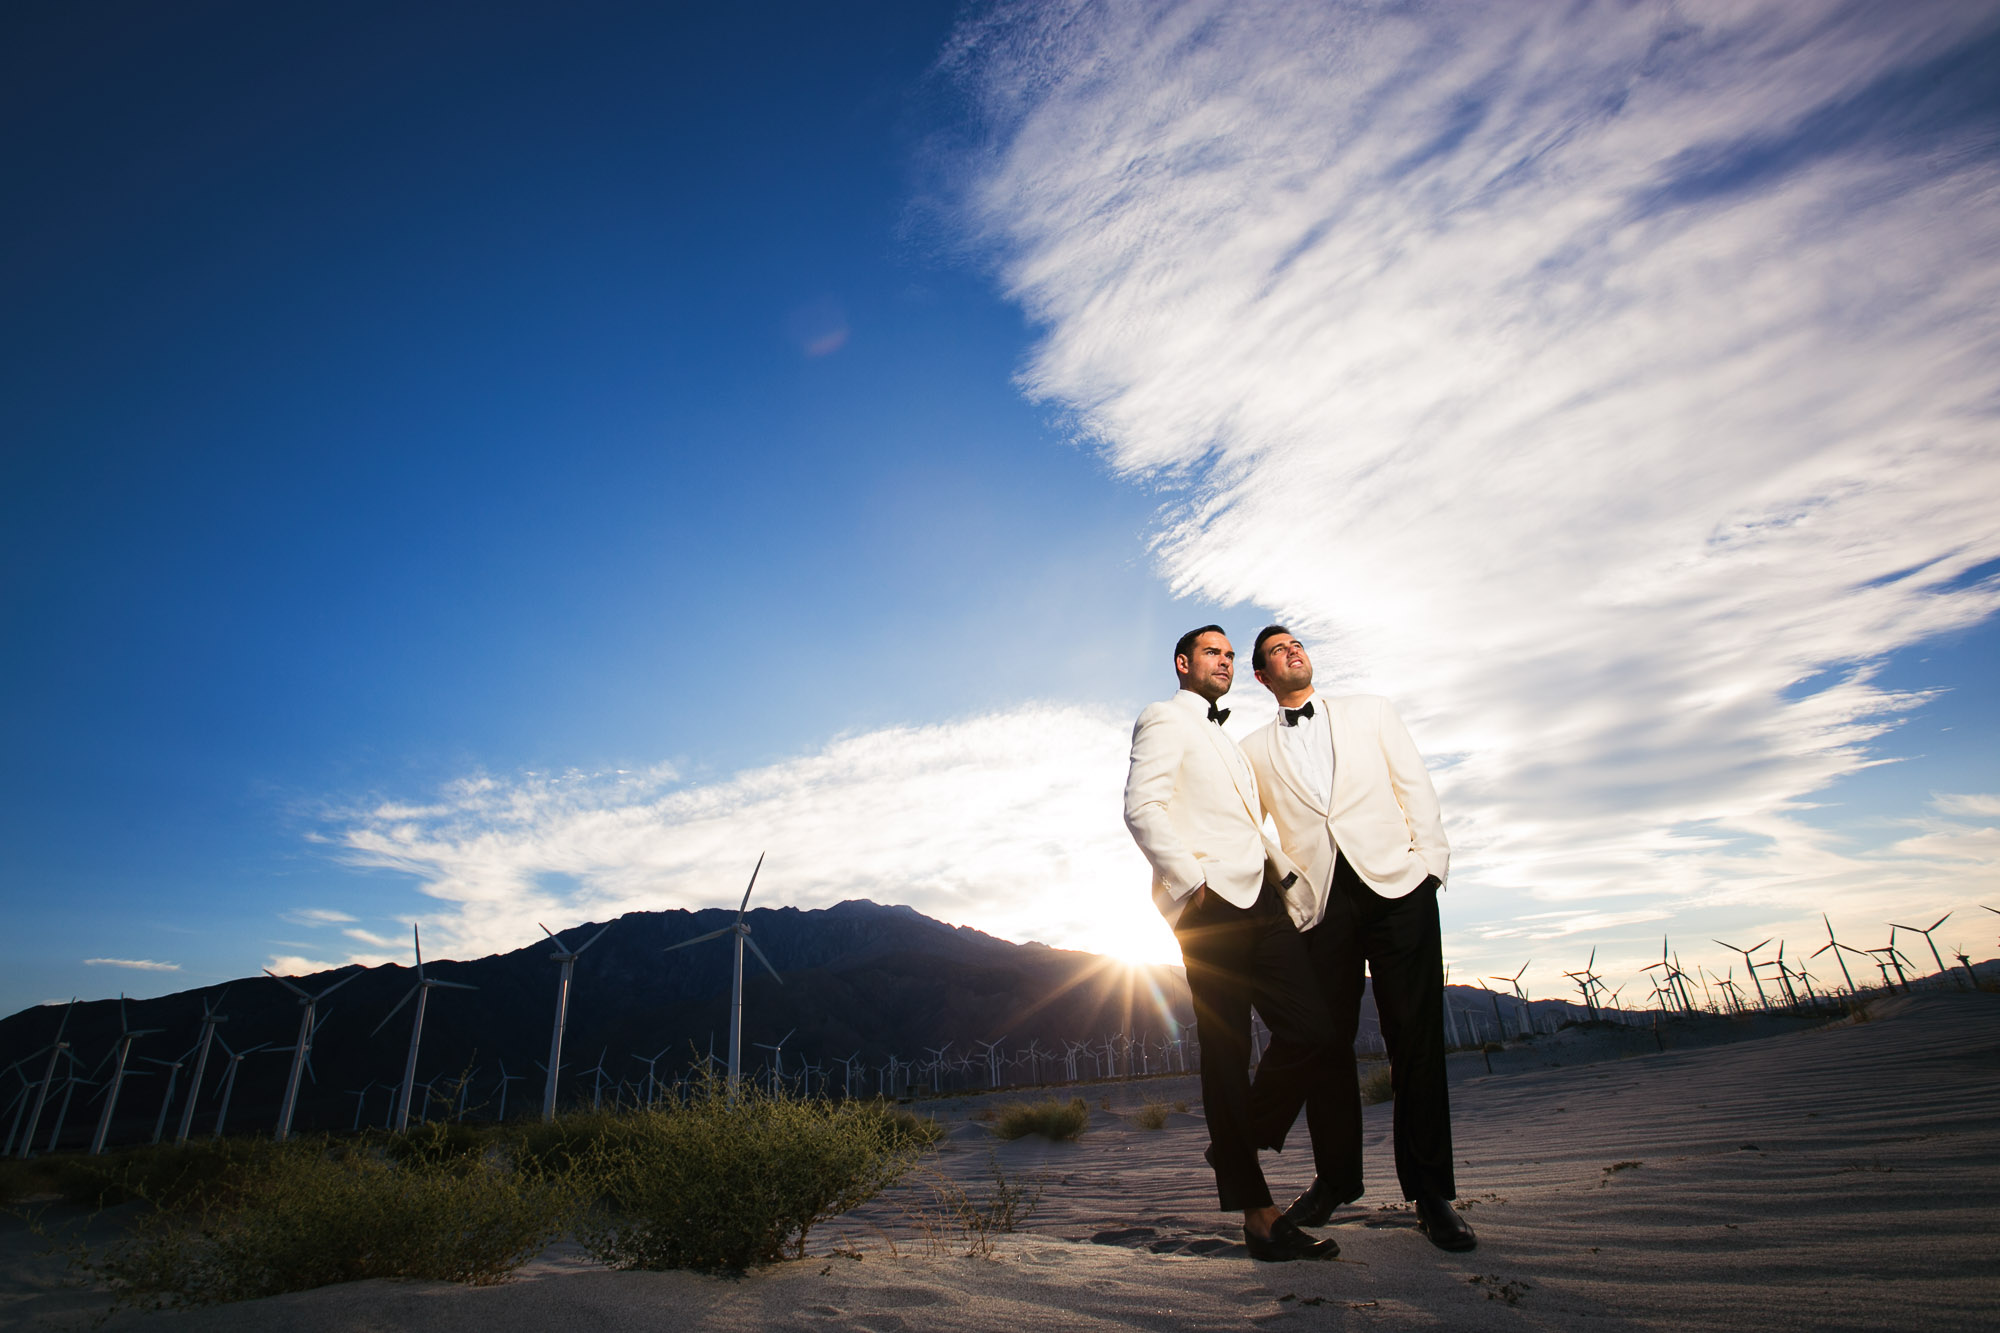 508-151025-Shane-Josh-Wedding-2395-Edit